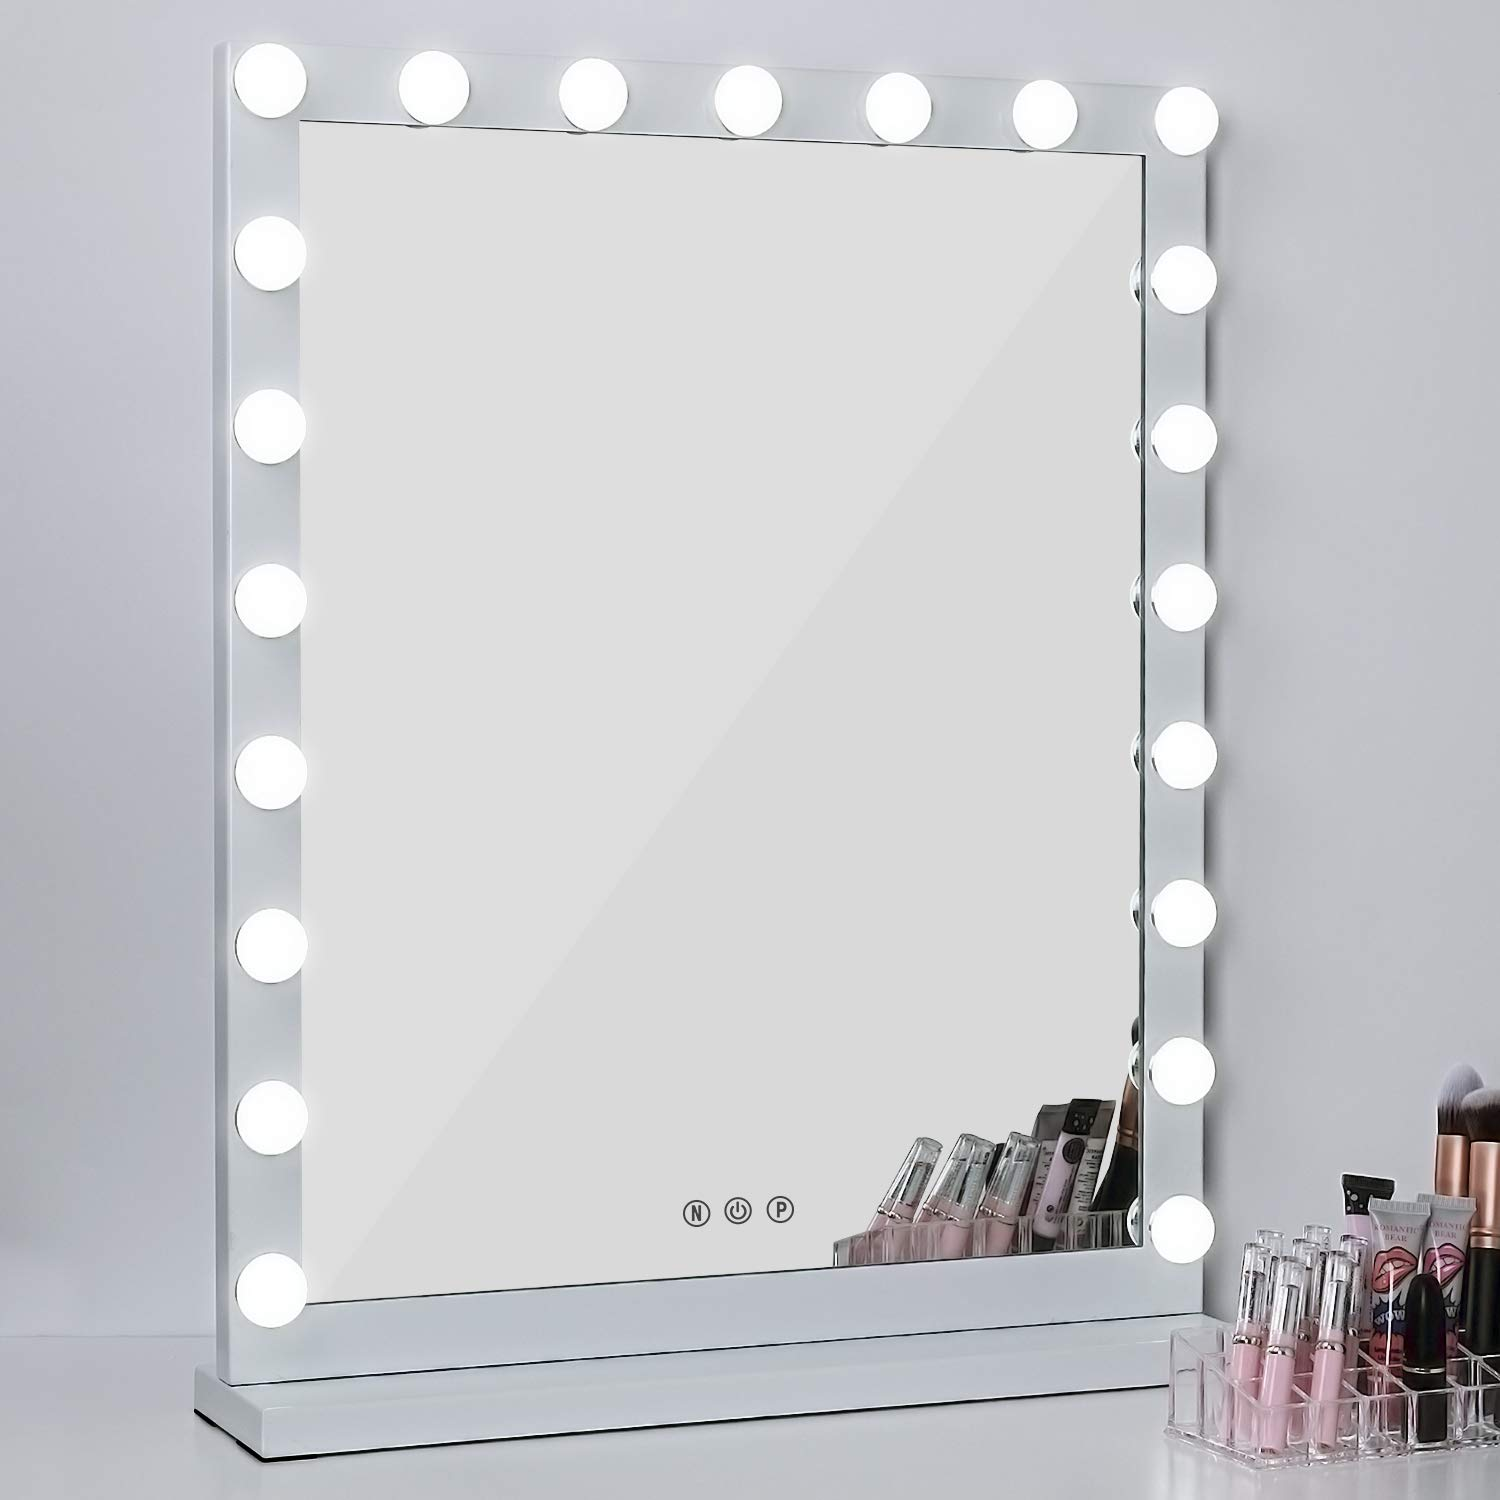 MRah Lighted Makeup Vanity Mirror, 3 Color Modes Tabletops Lighted Mirror LED Illuminated Cosmetic Mirror with 21 LED Dimmable Bulbs (25'' x 20'')